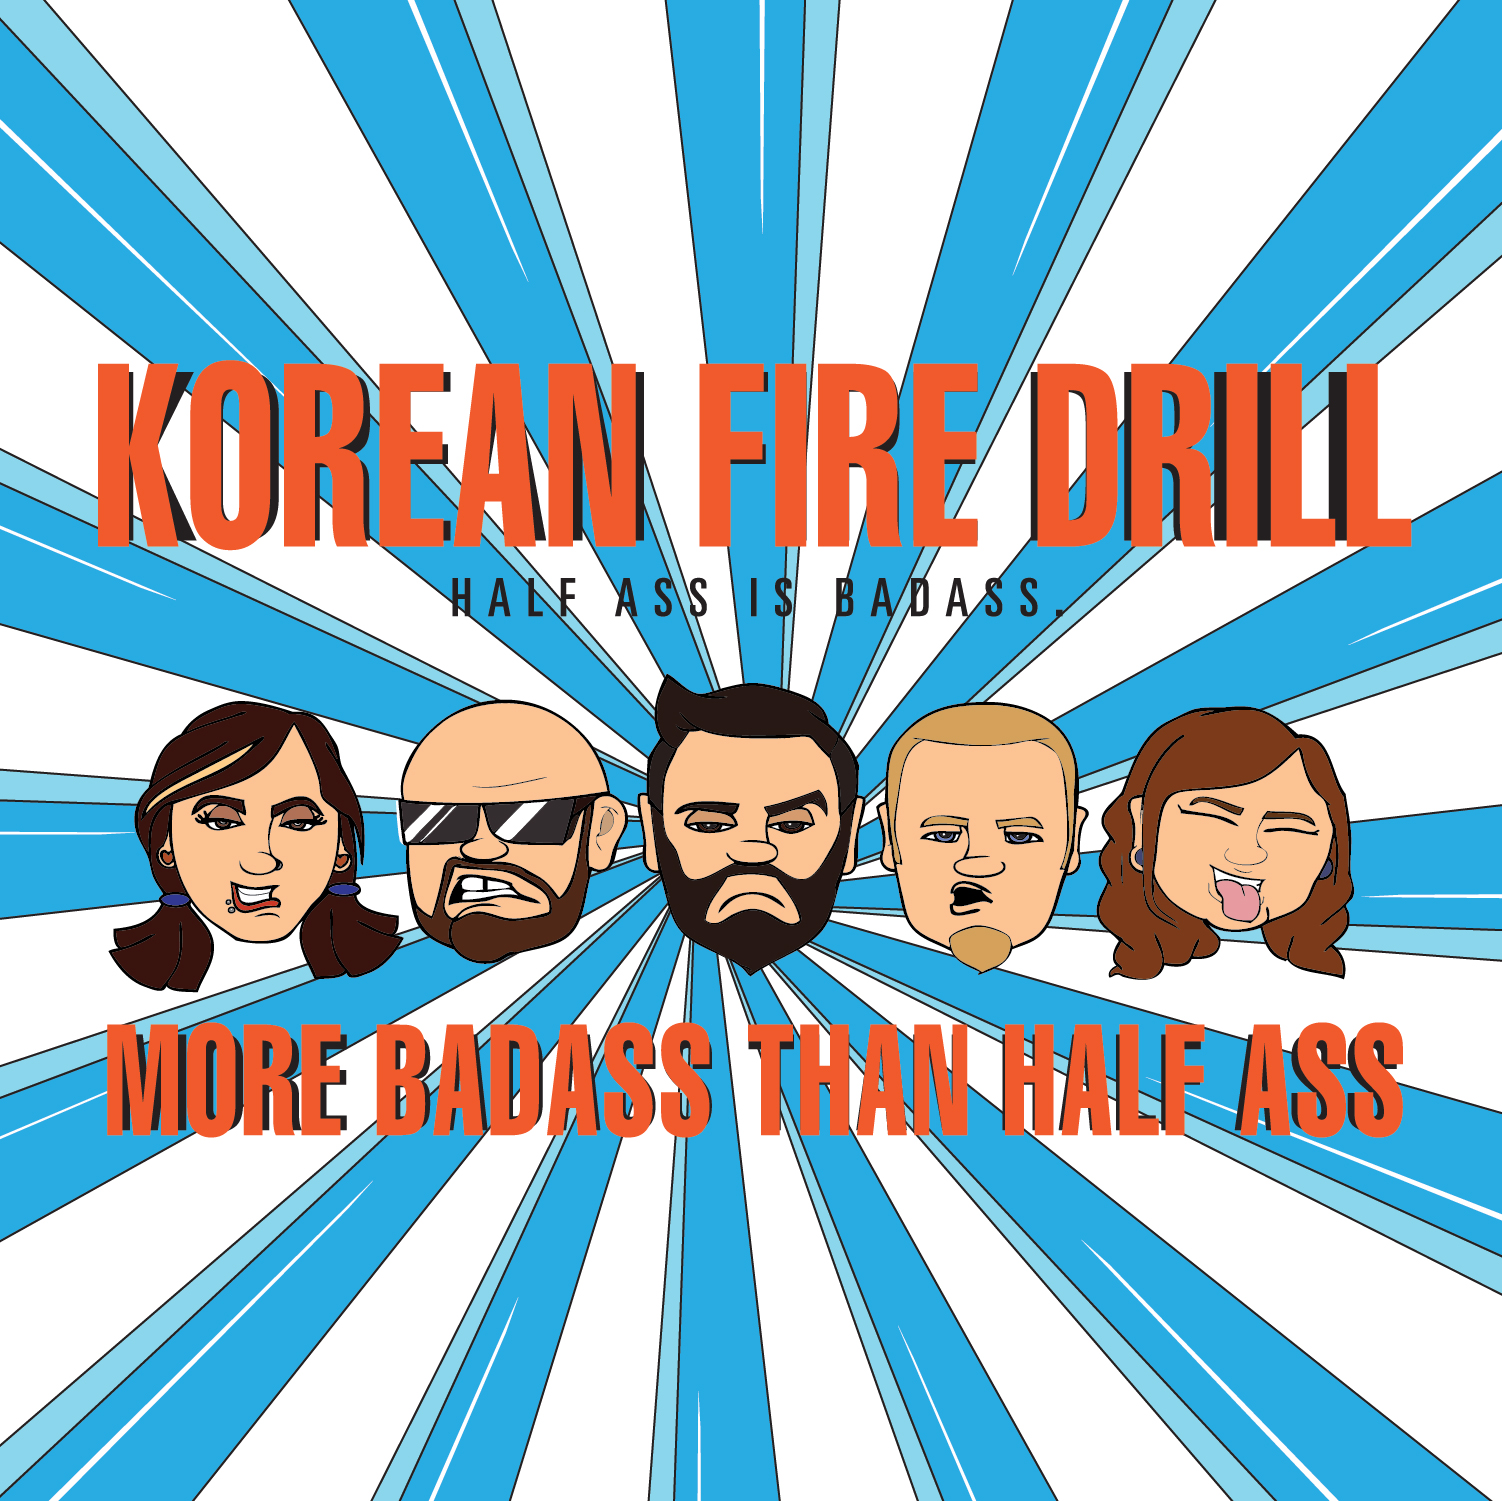 korean-fire-drill-mbtha